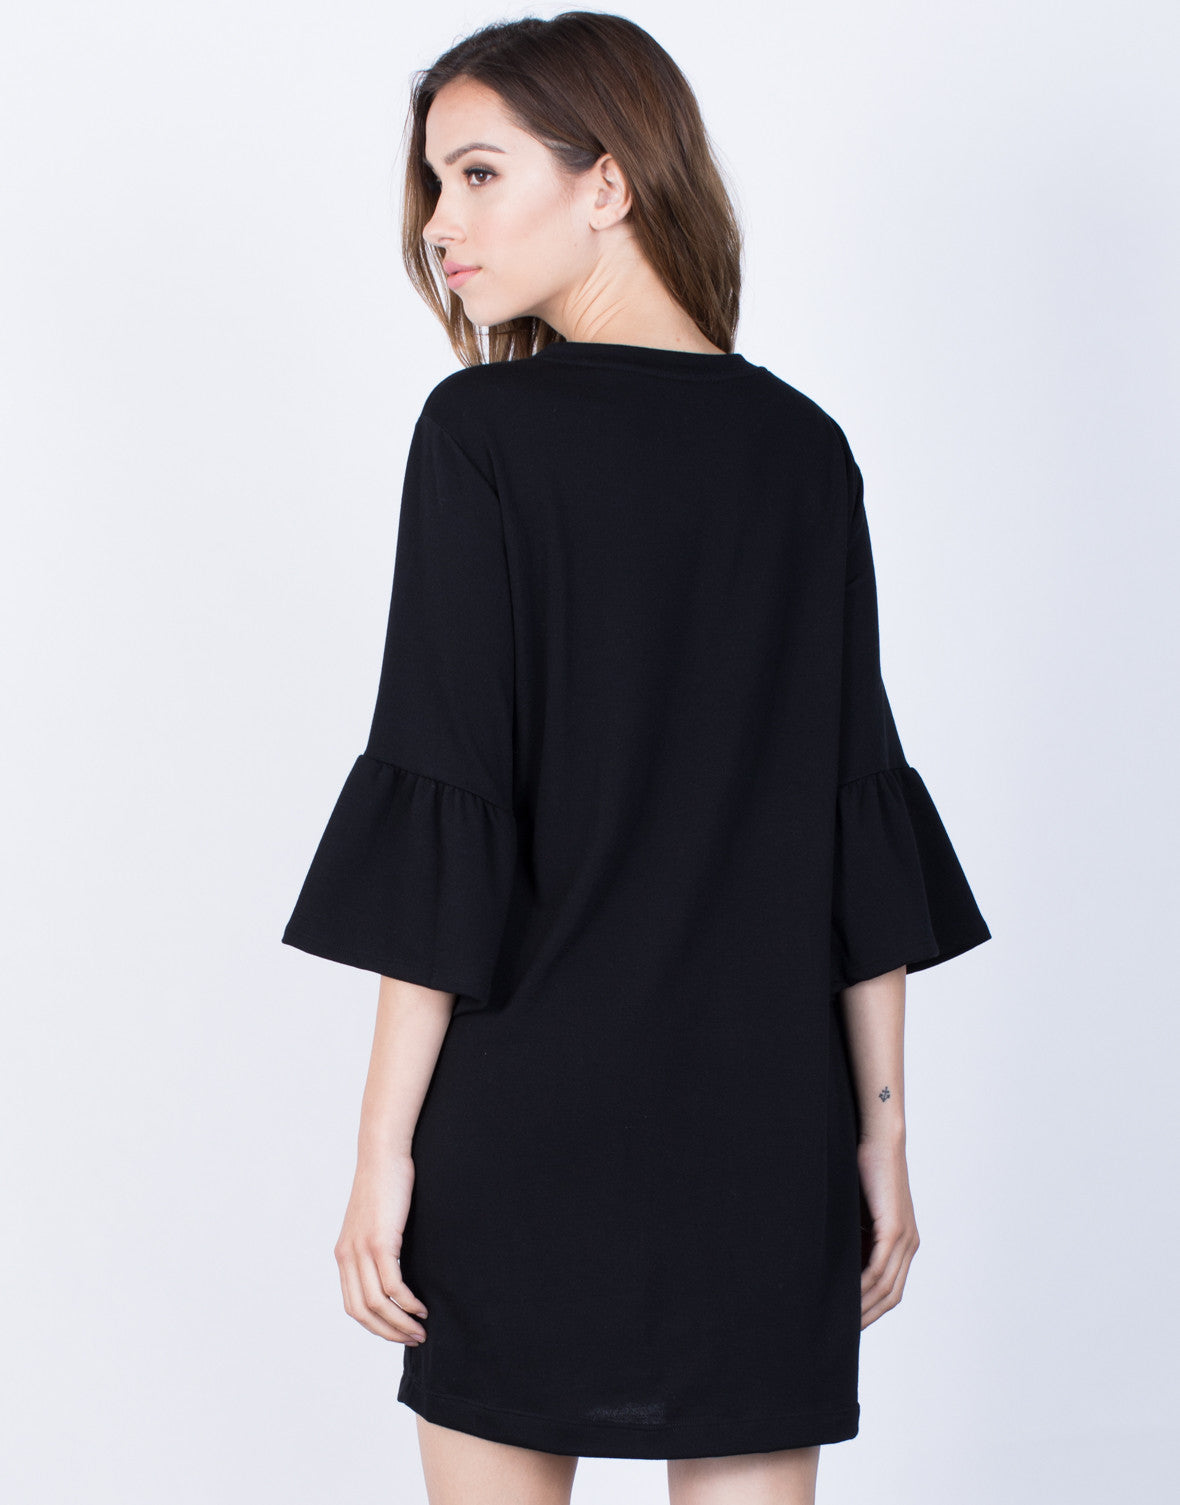 Back View of Flare the Bell Dress